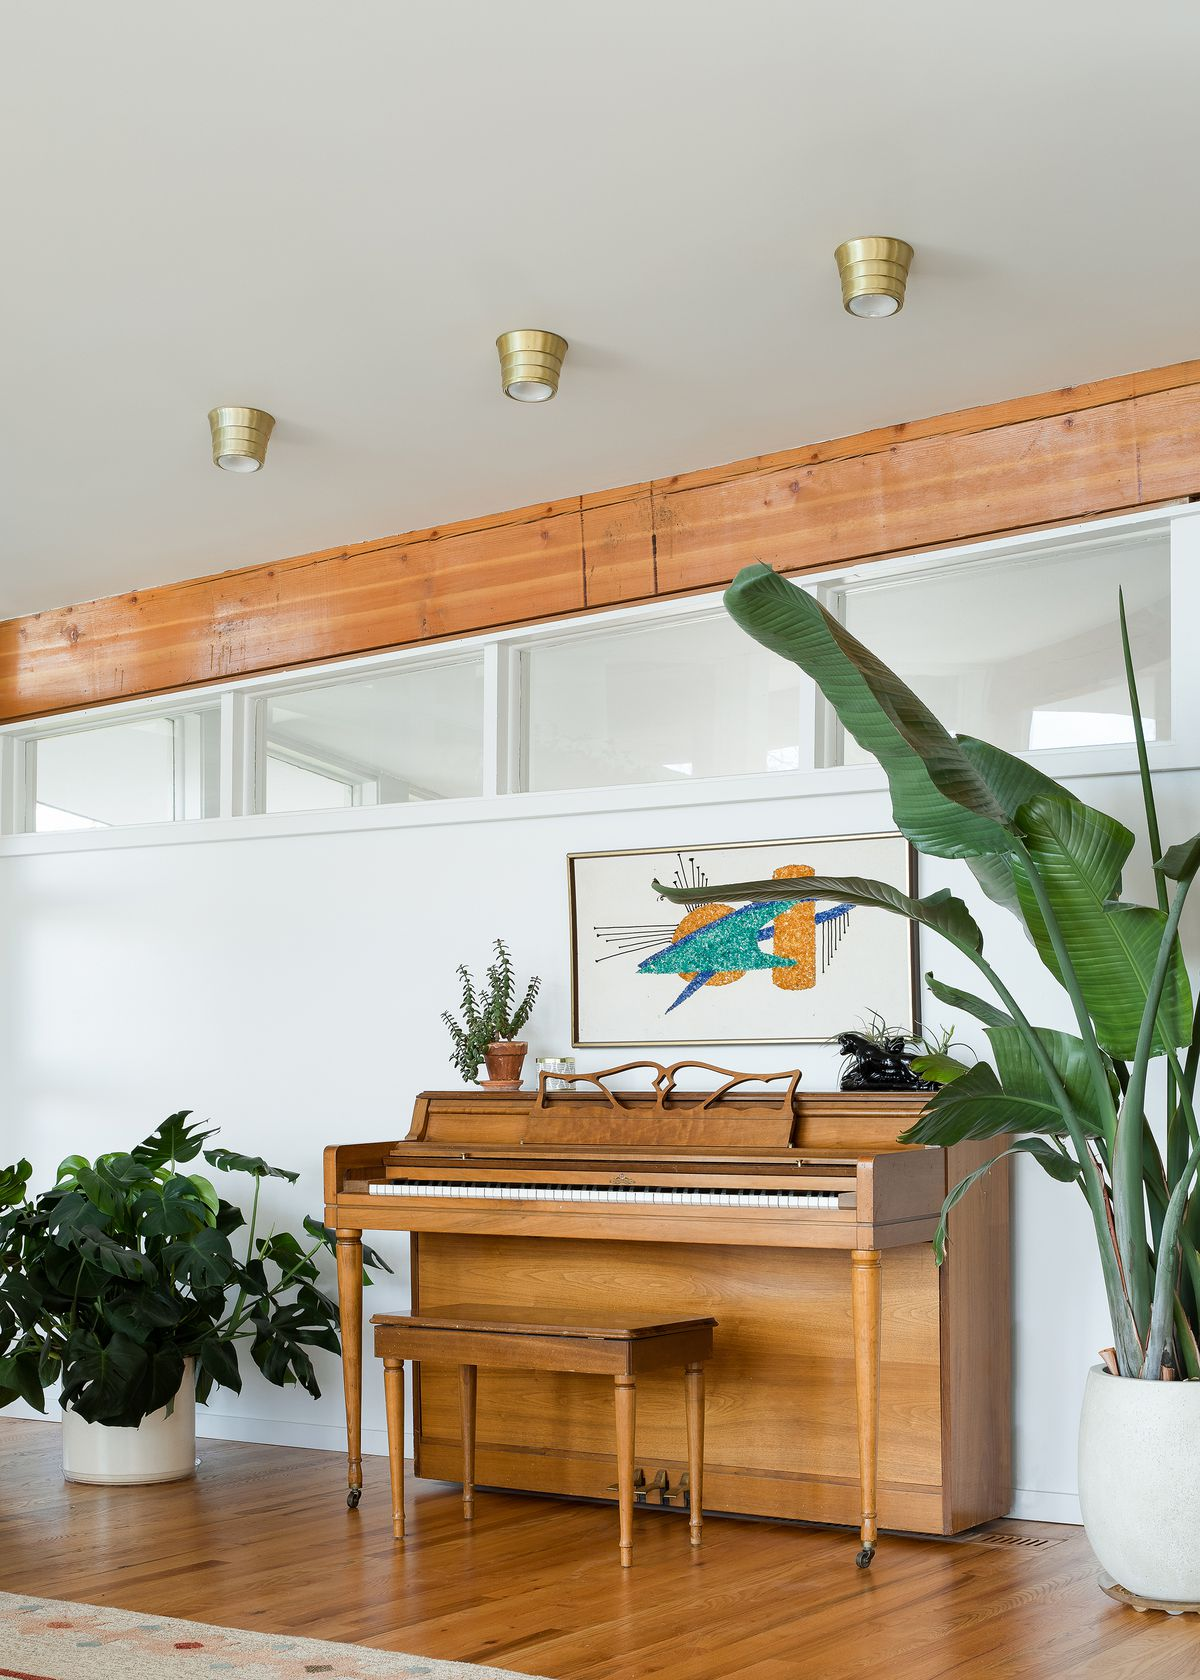 A piano sits against a white wall. There is a large framed work of art hanging over the piano, The piano is flanked by multiple houseplants.